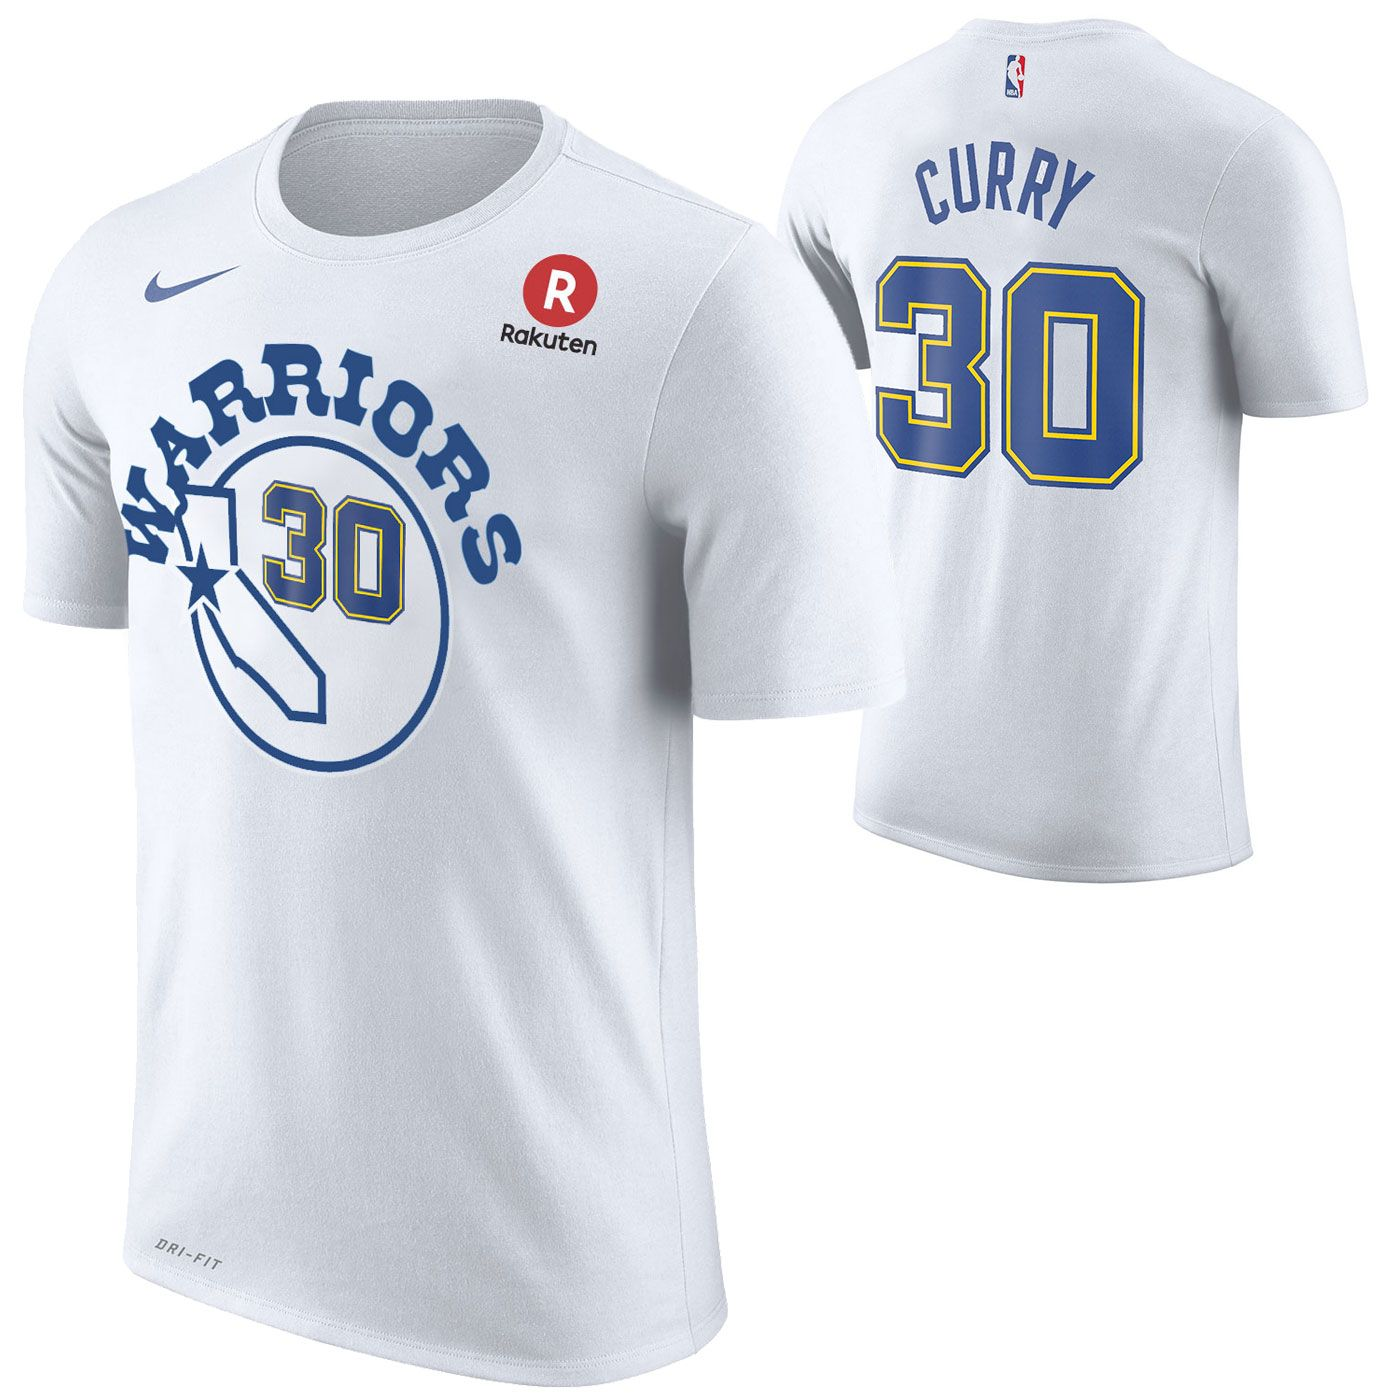 cc4d4cbbe Golden State Warriors Nike Dri-FIT Men s Hardwood Classic Stephen Curry  30  Game Time Name   Number Tee - White